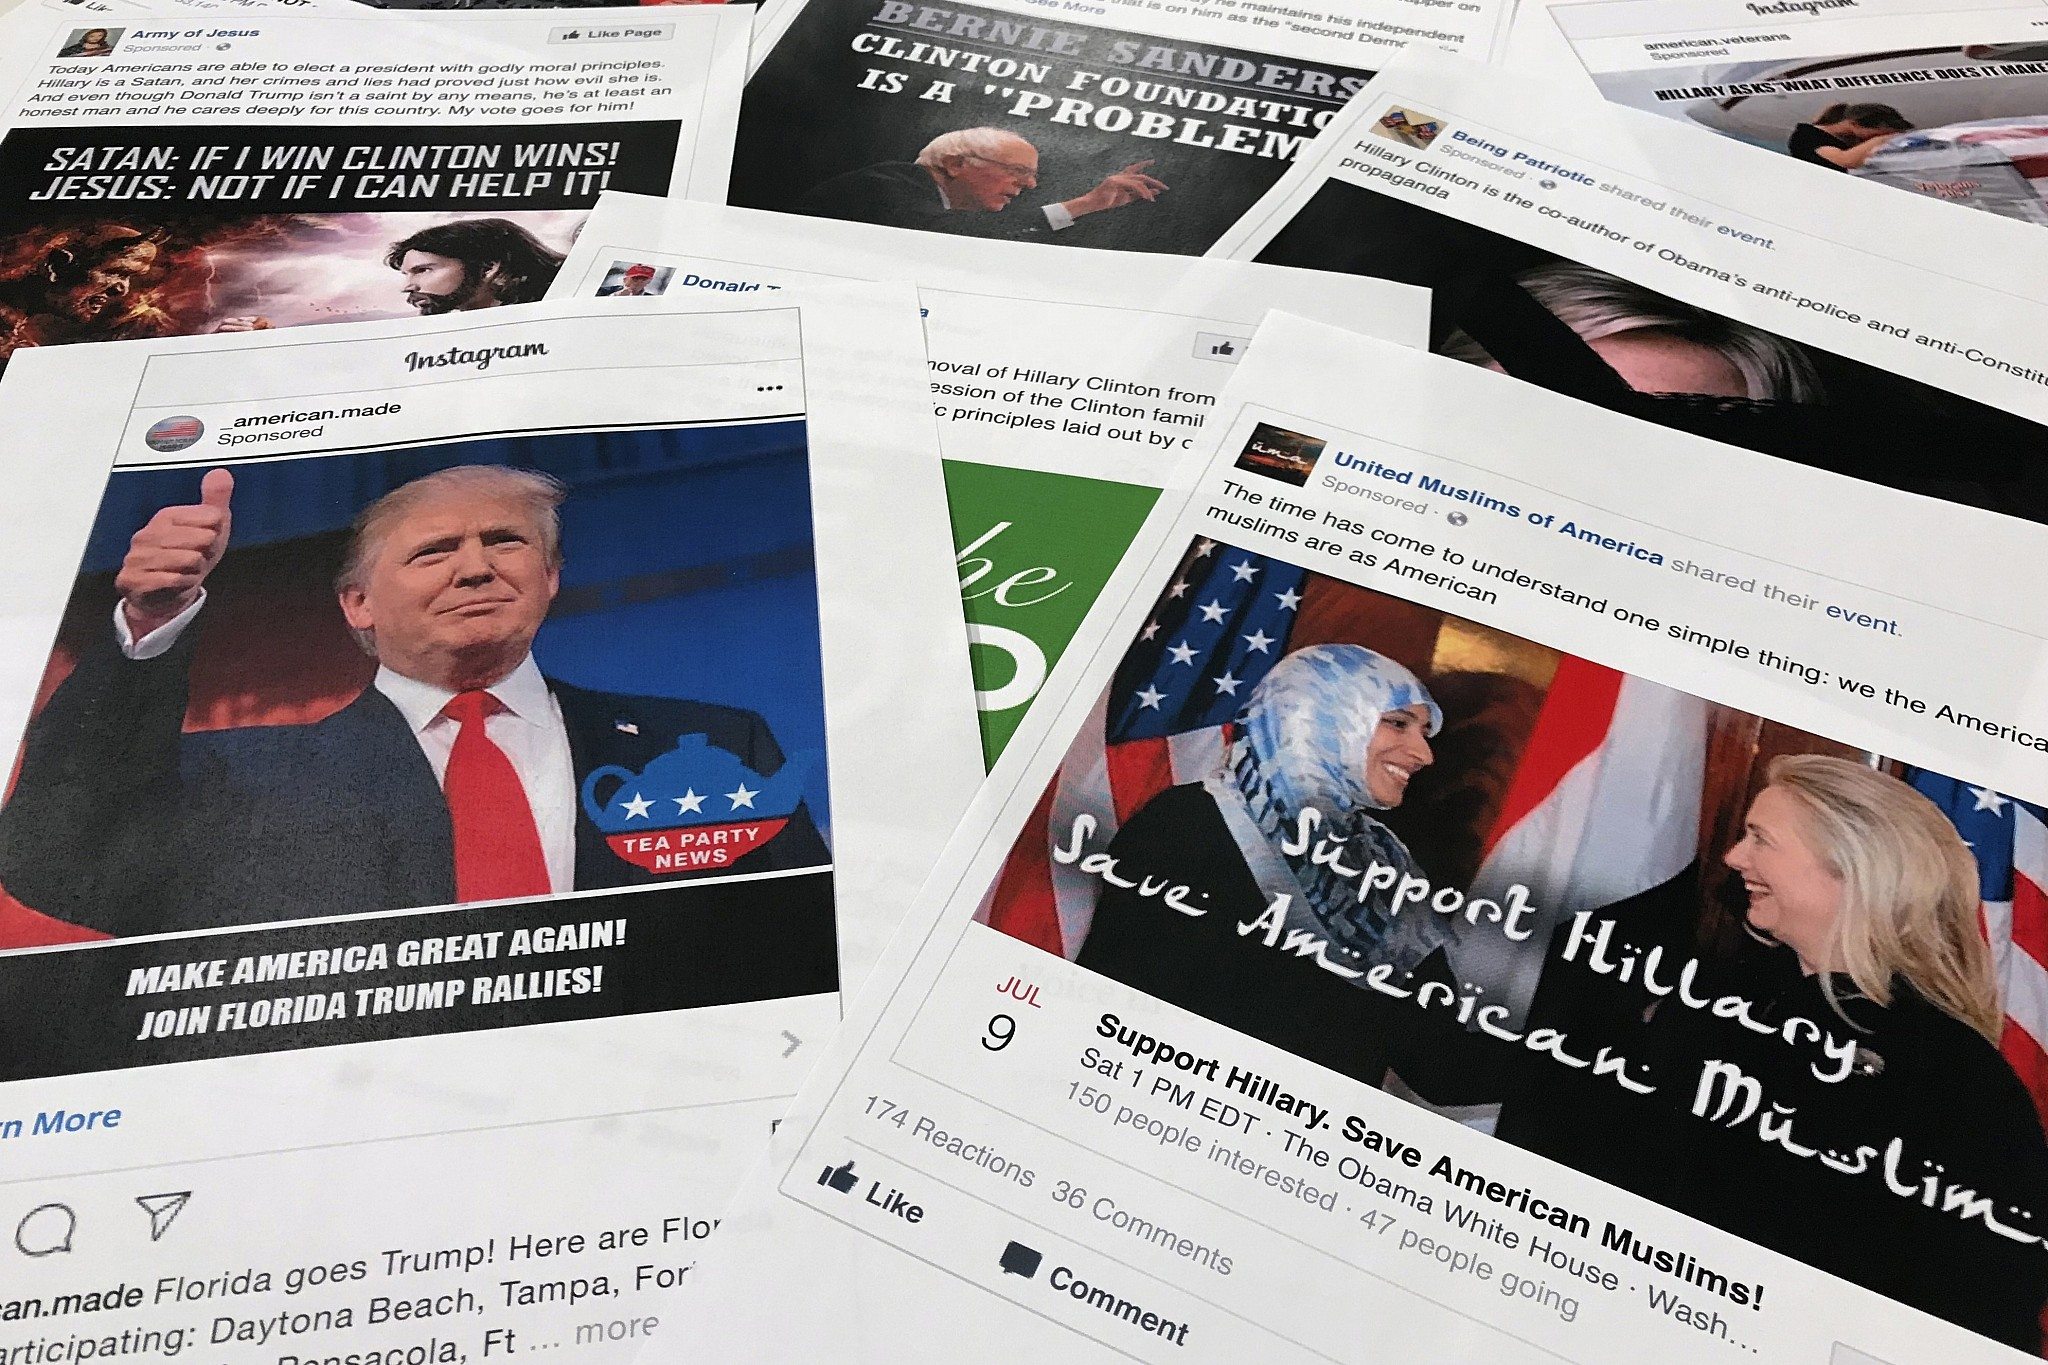 Russian trolls targeted Mueller with disinformation campaign